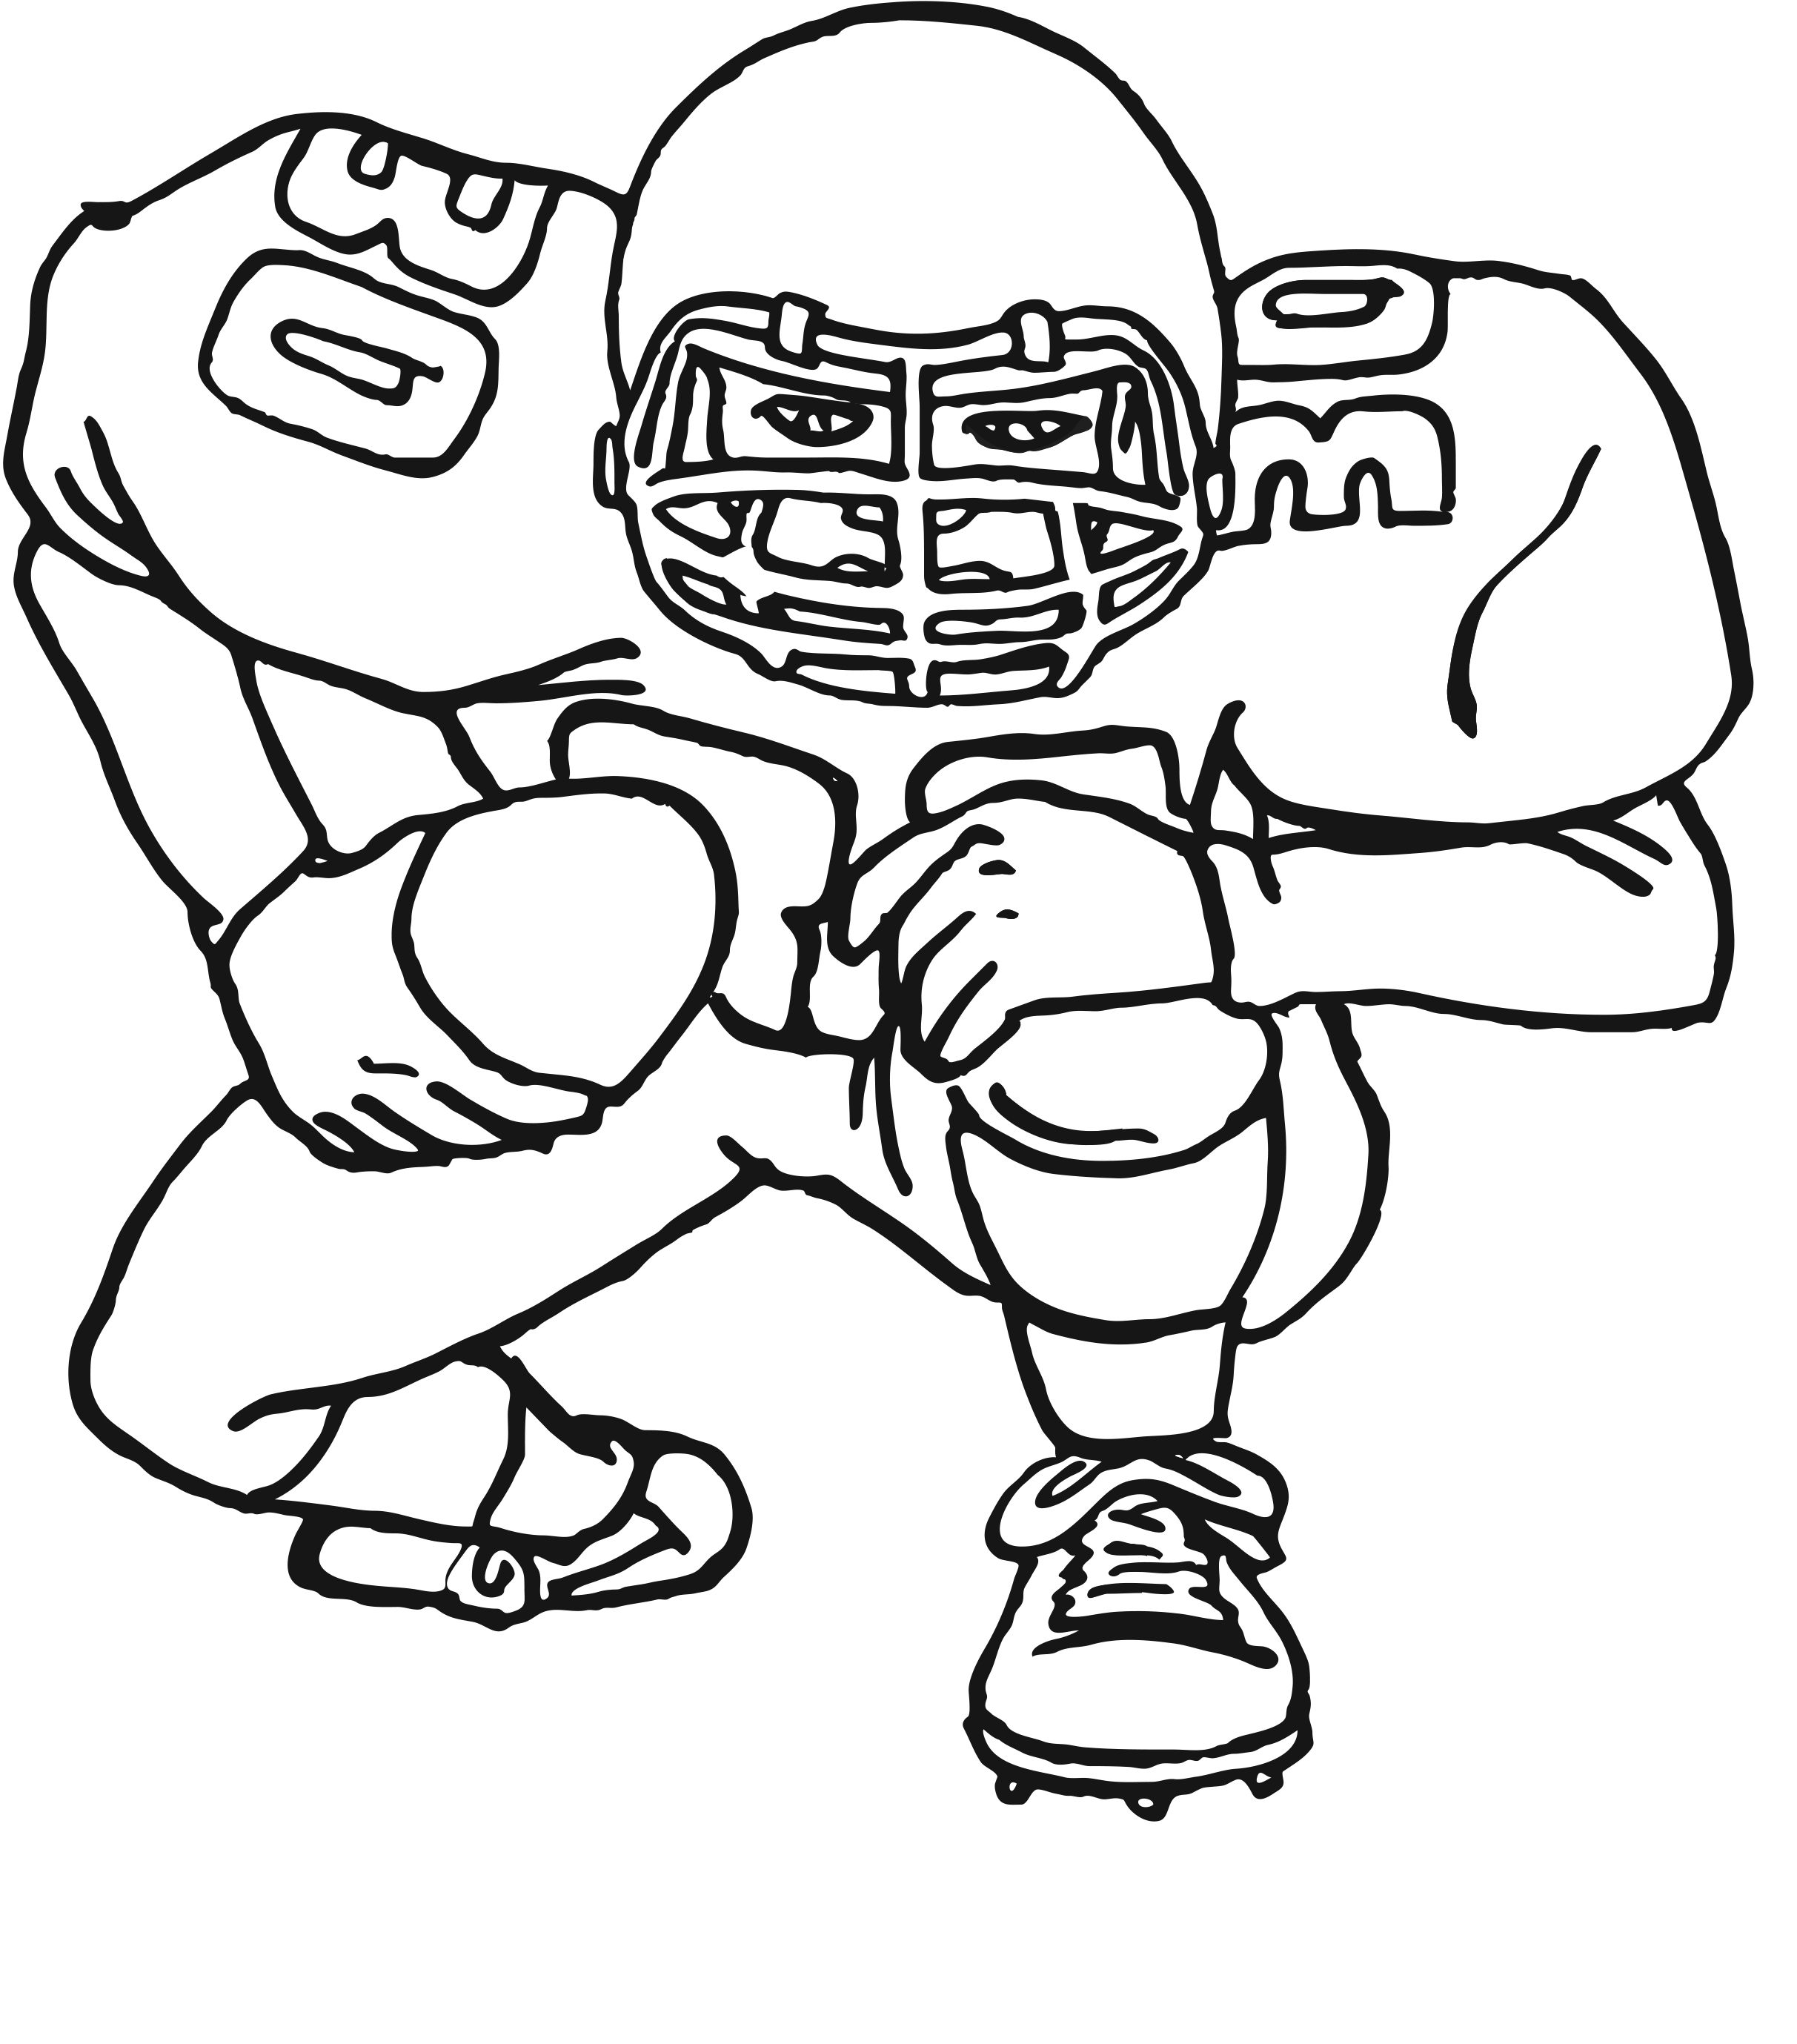 football colouring pages printable uk free printable football coloring pages for kids best